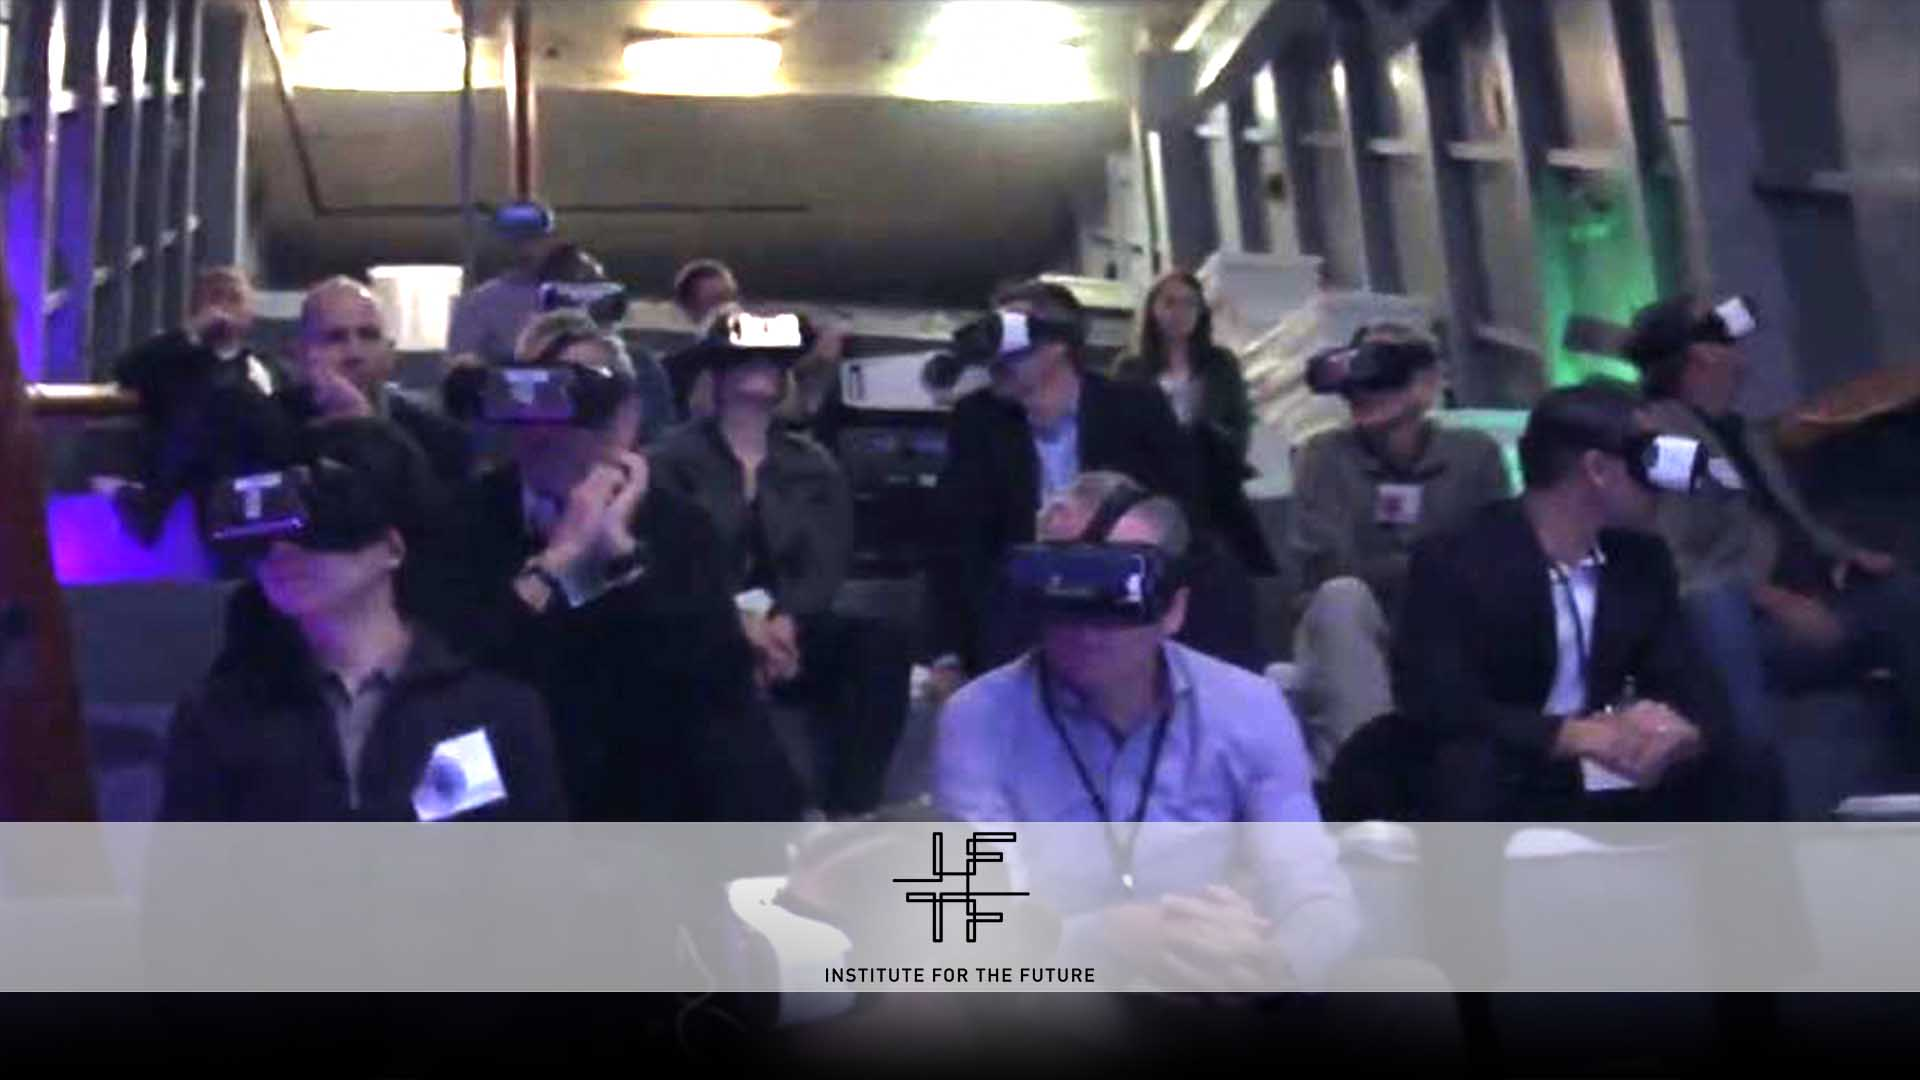 IFTF VR Sessions